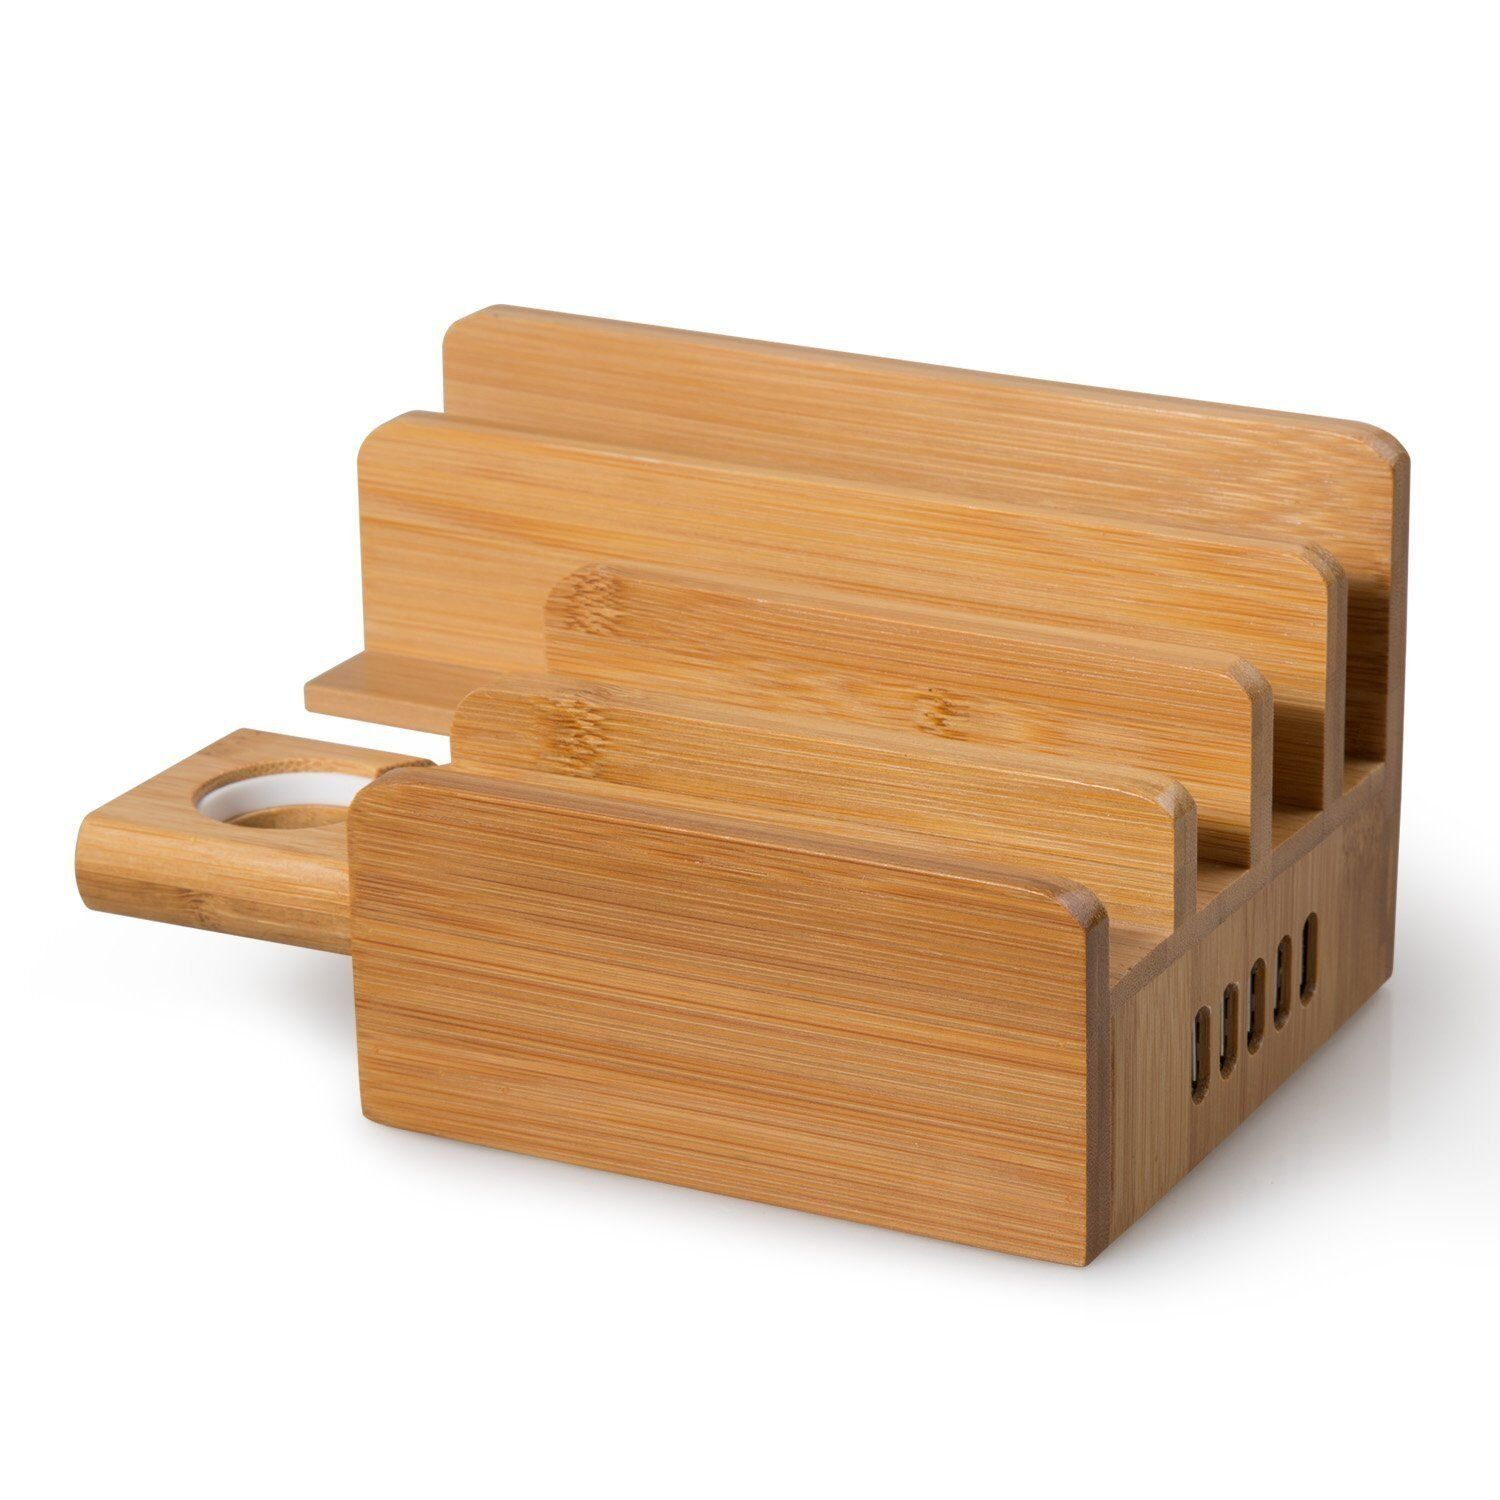 Ereach w port usb bamboo charging dock station with apple watch